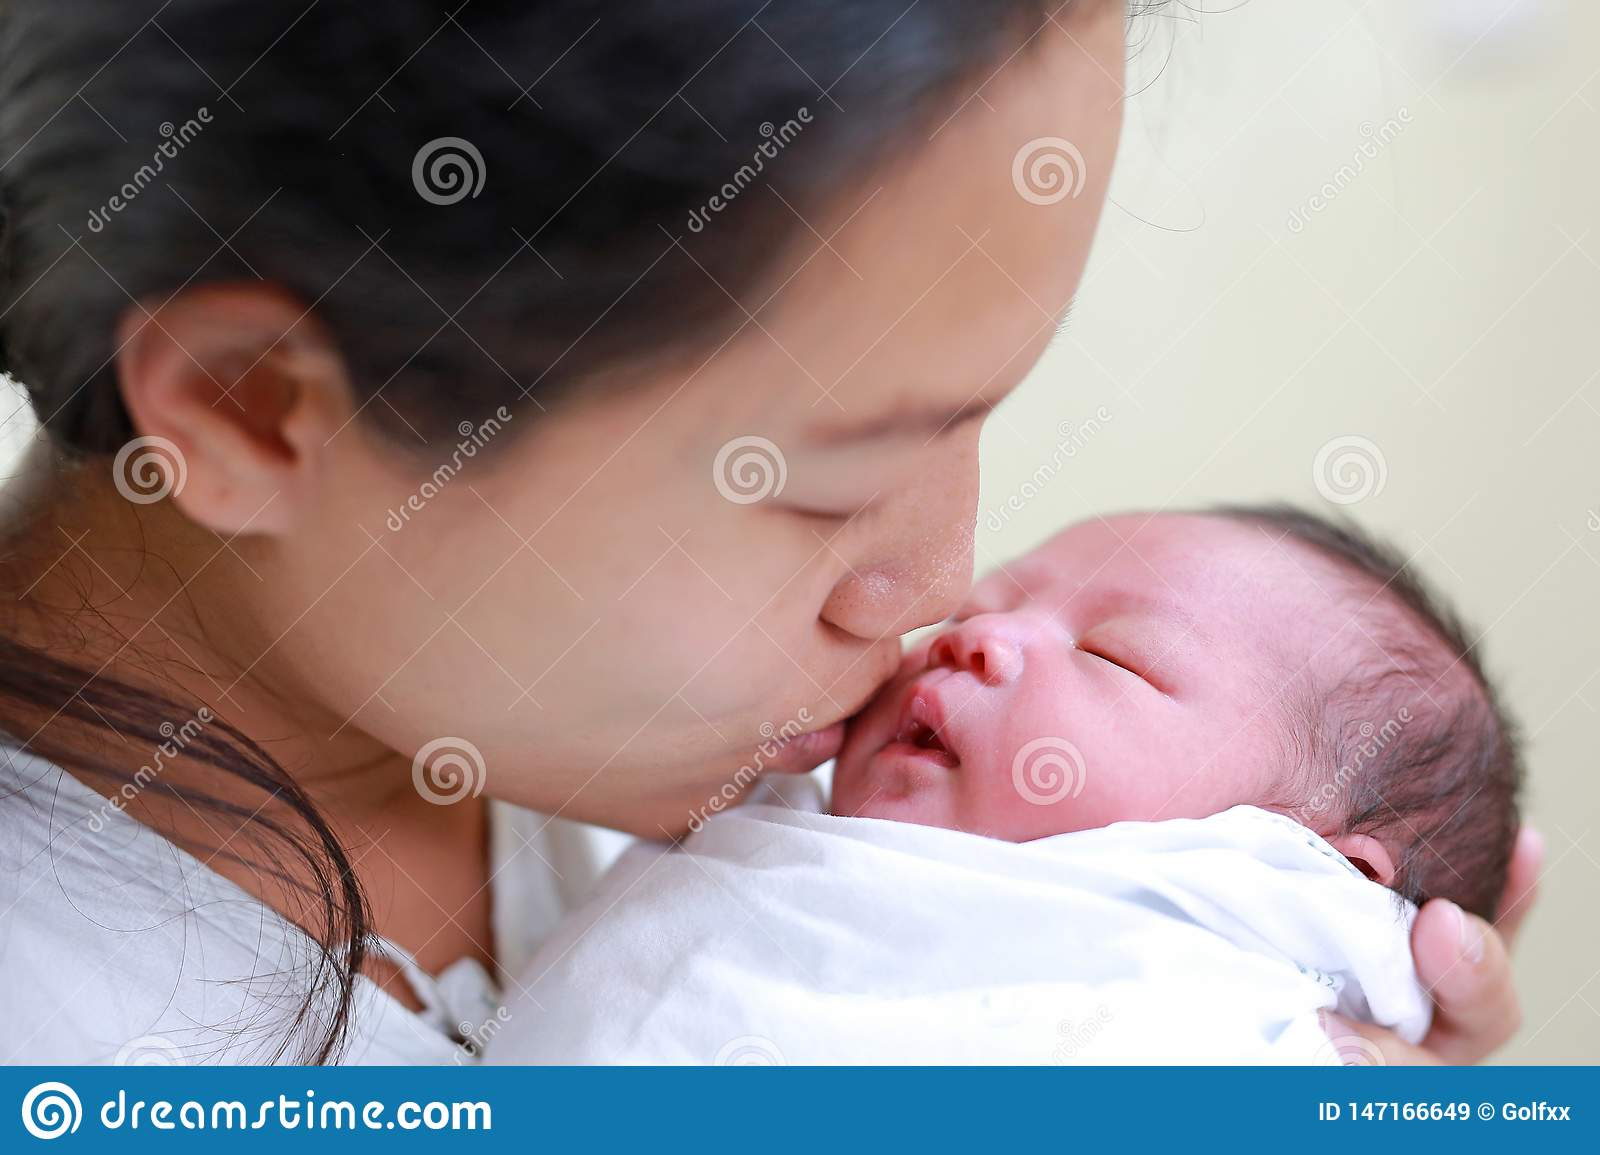 Closeup mother kissing infant baby in her arms in hospital after delivery room